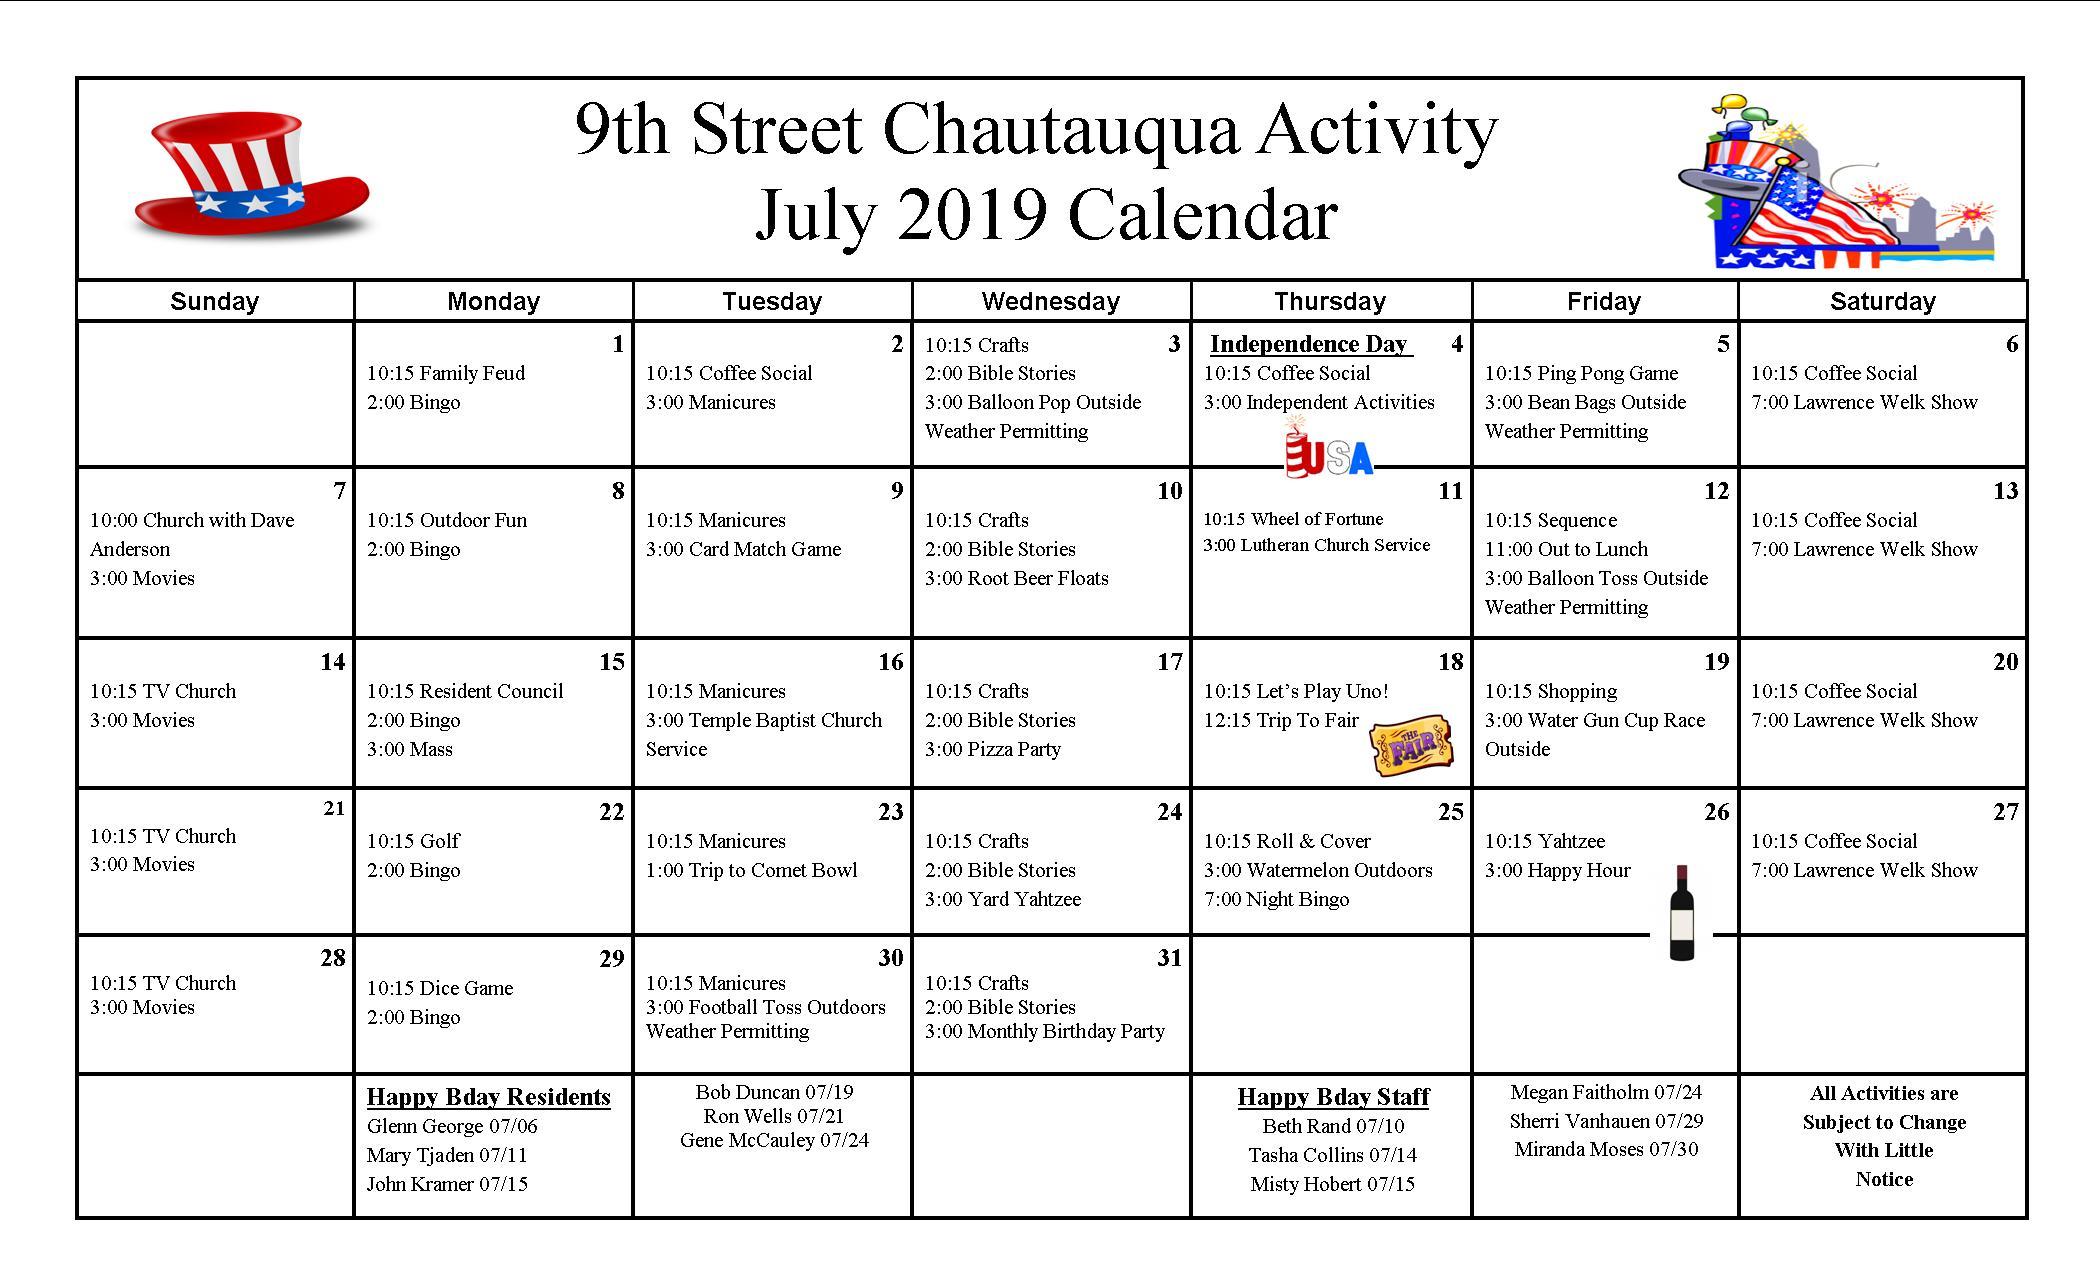 9th Street Activity Calendar July 2019